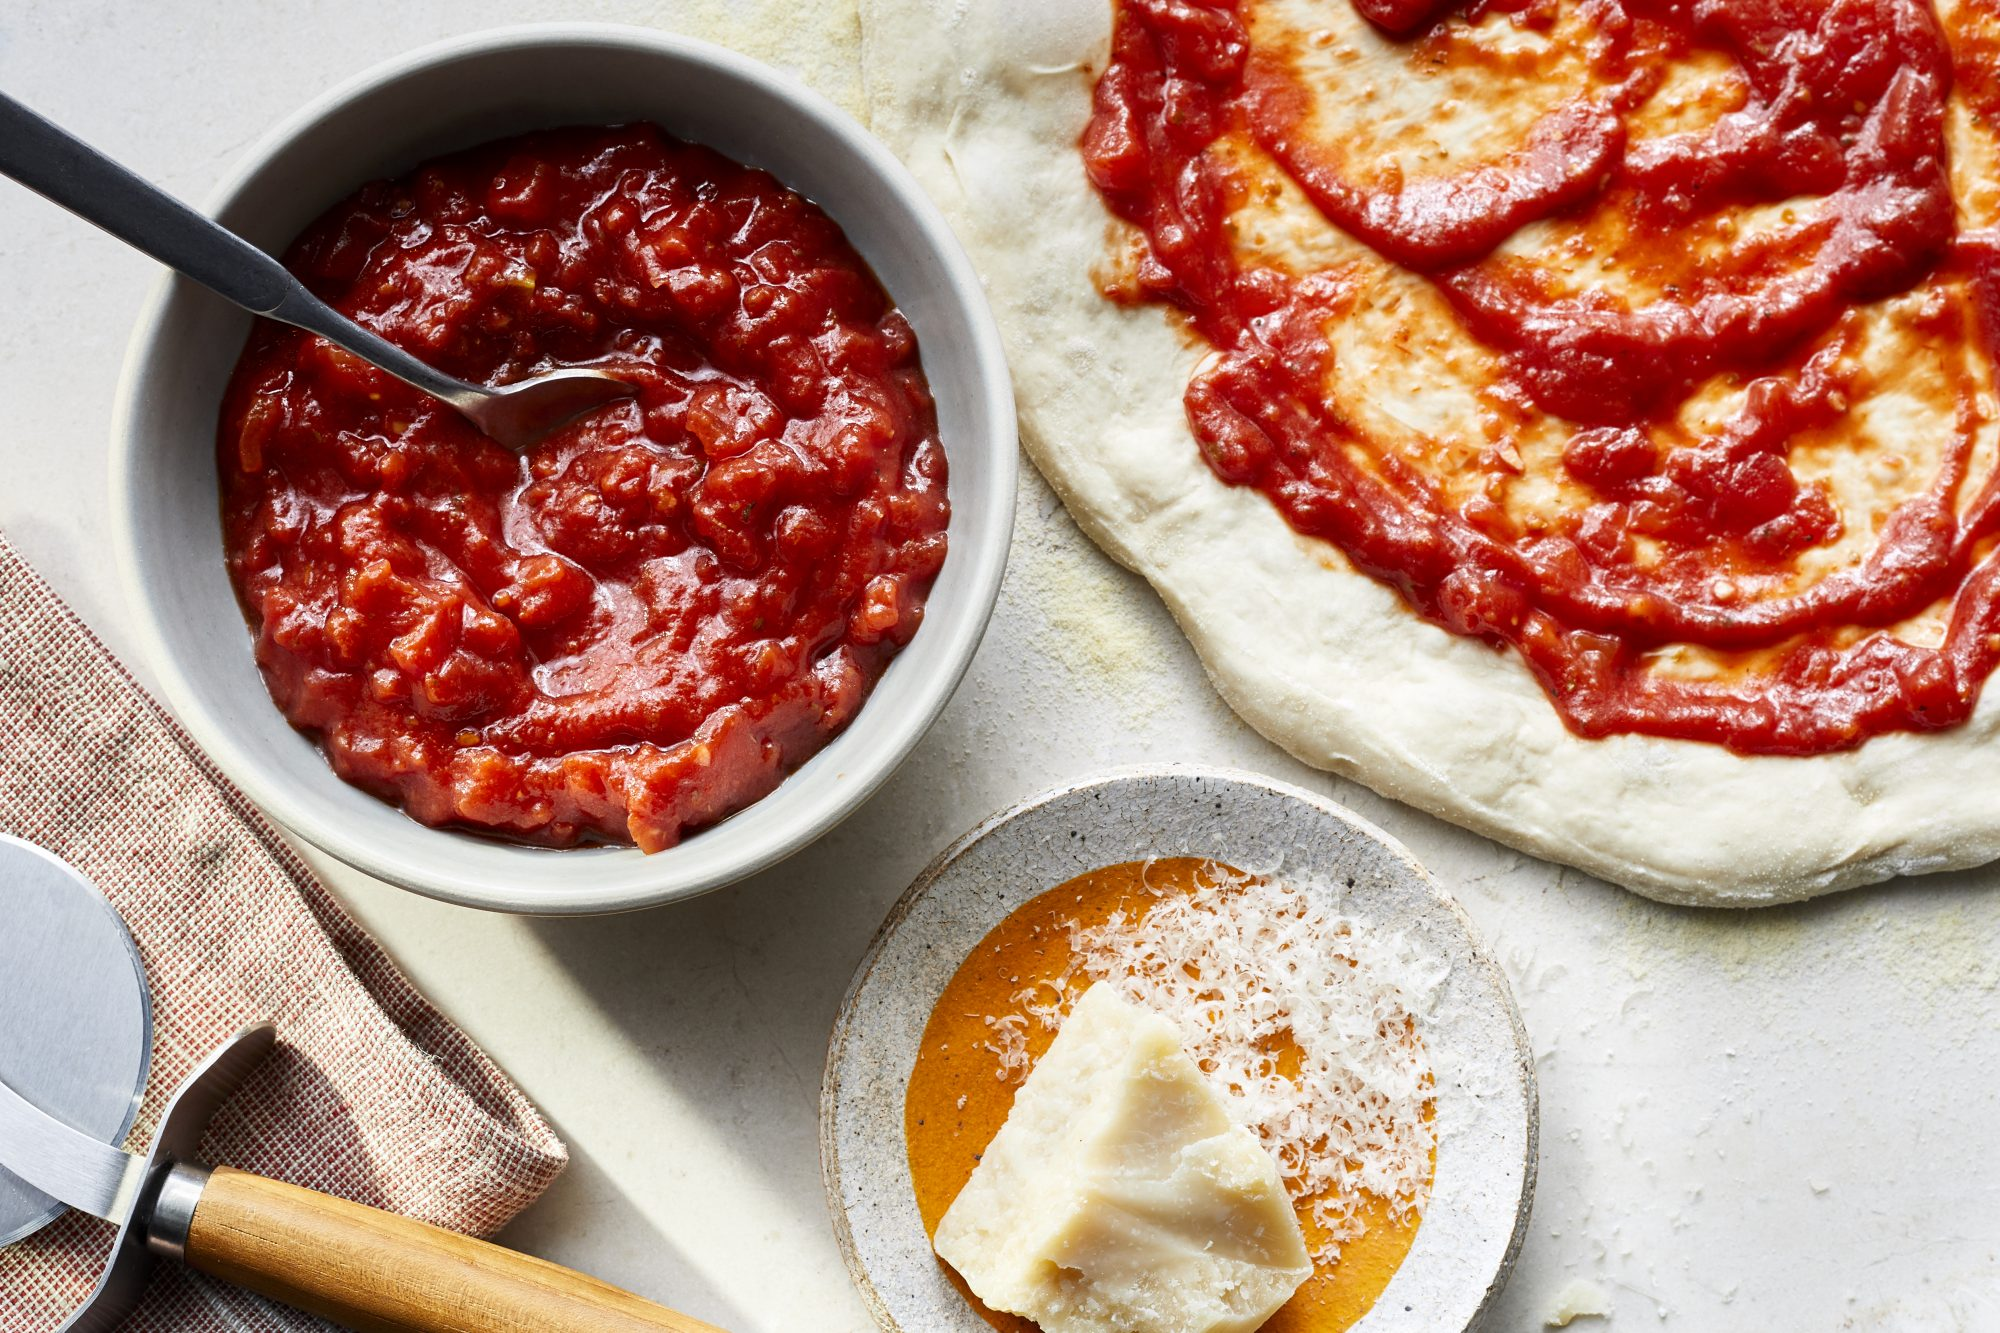 mr-new york-style pizza sauce